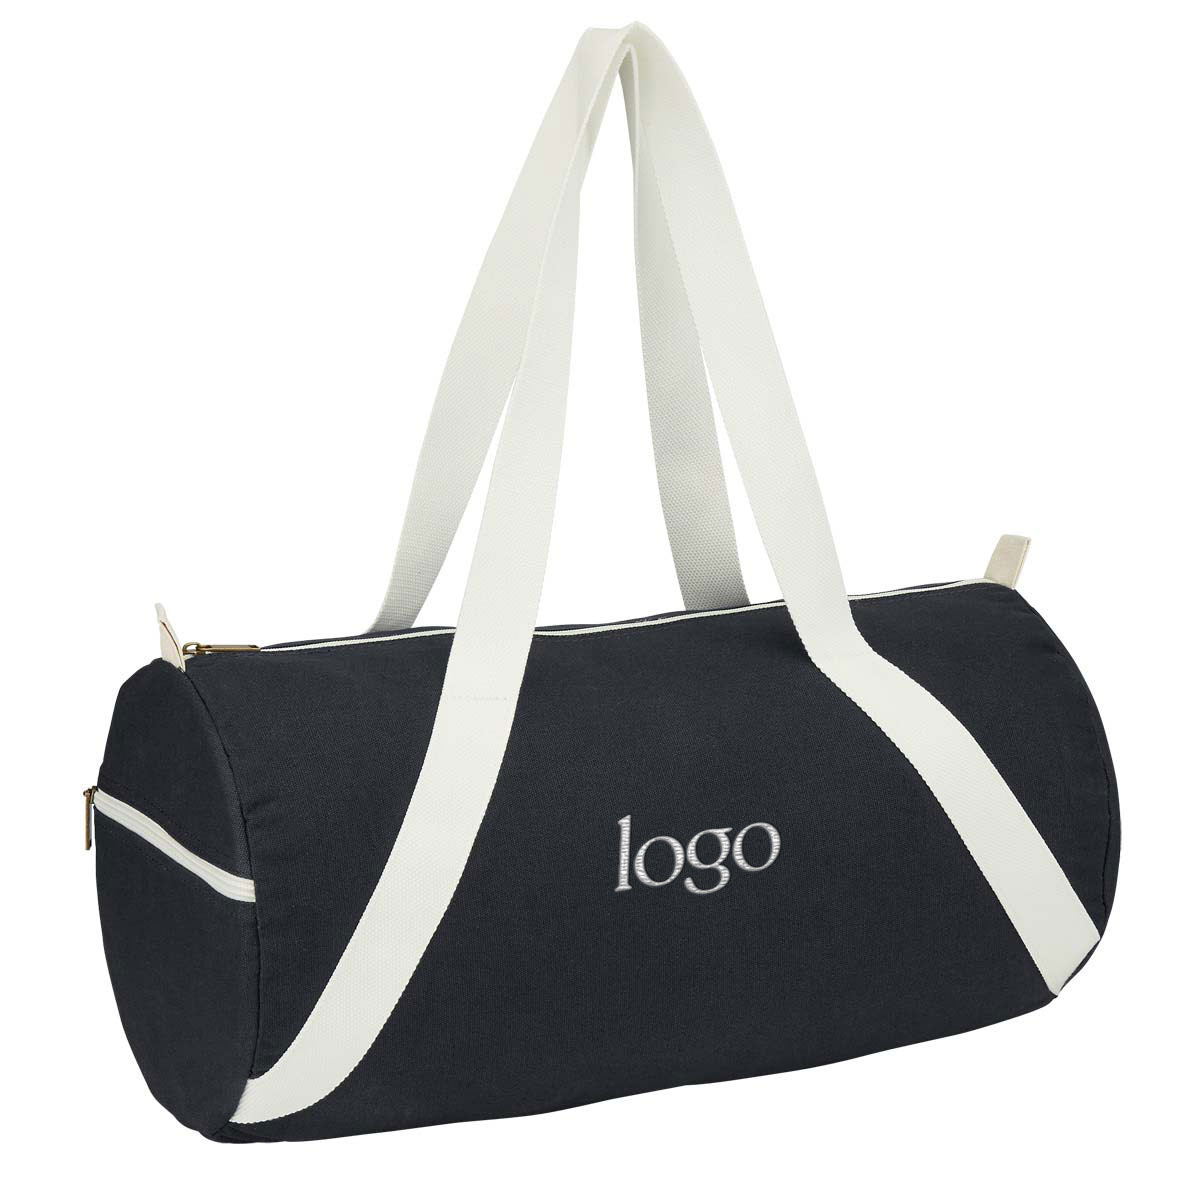 243026 eddy duffel one location embroidery up to 5 000 stitches